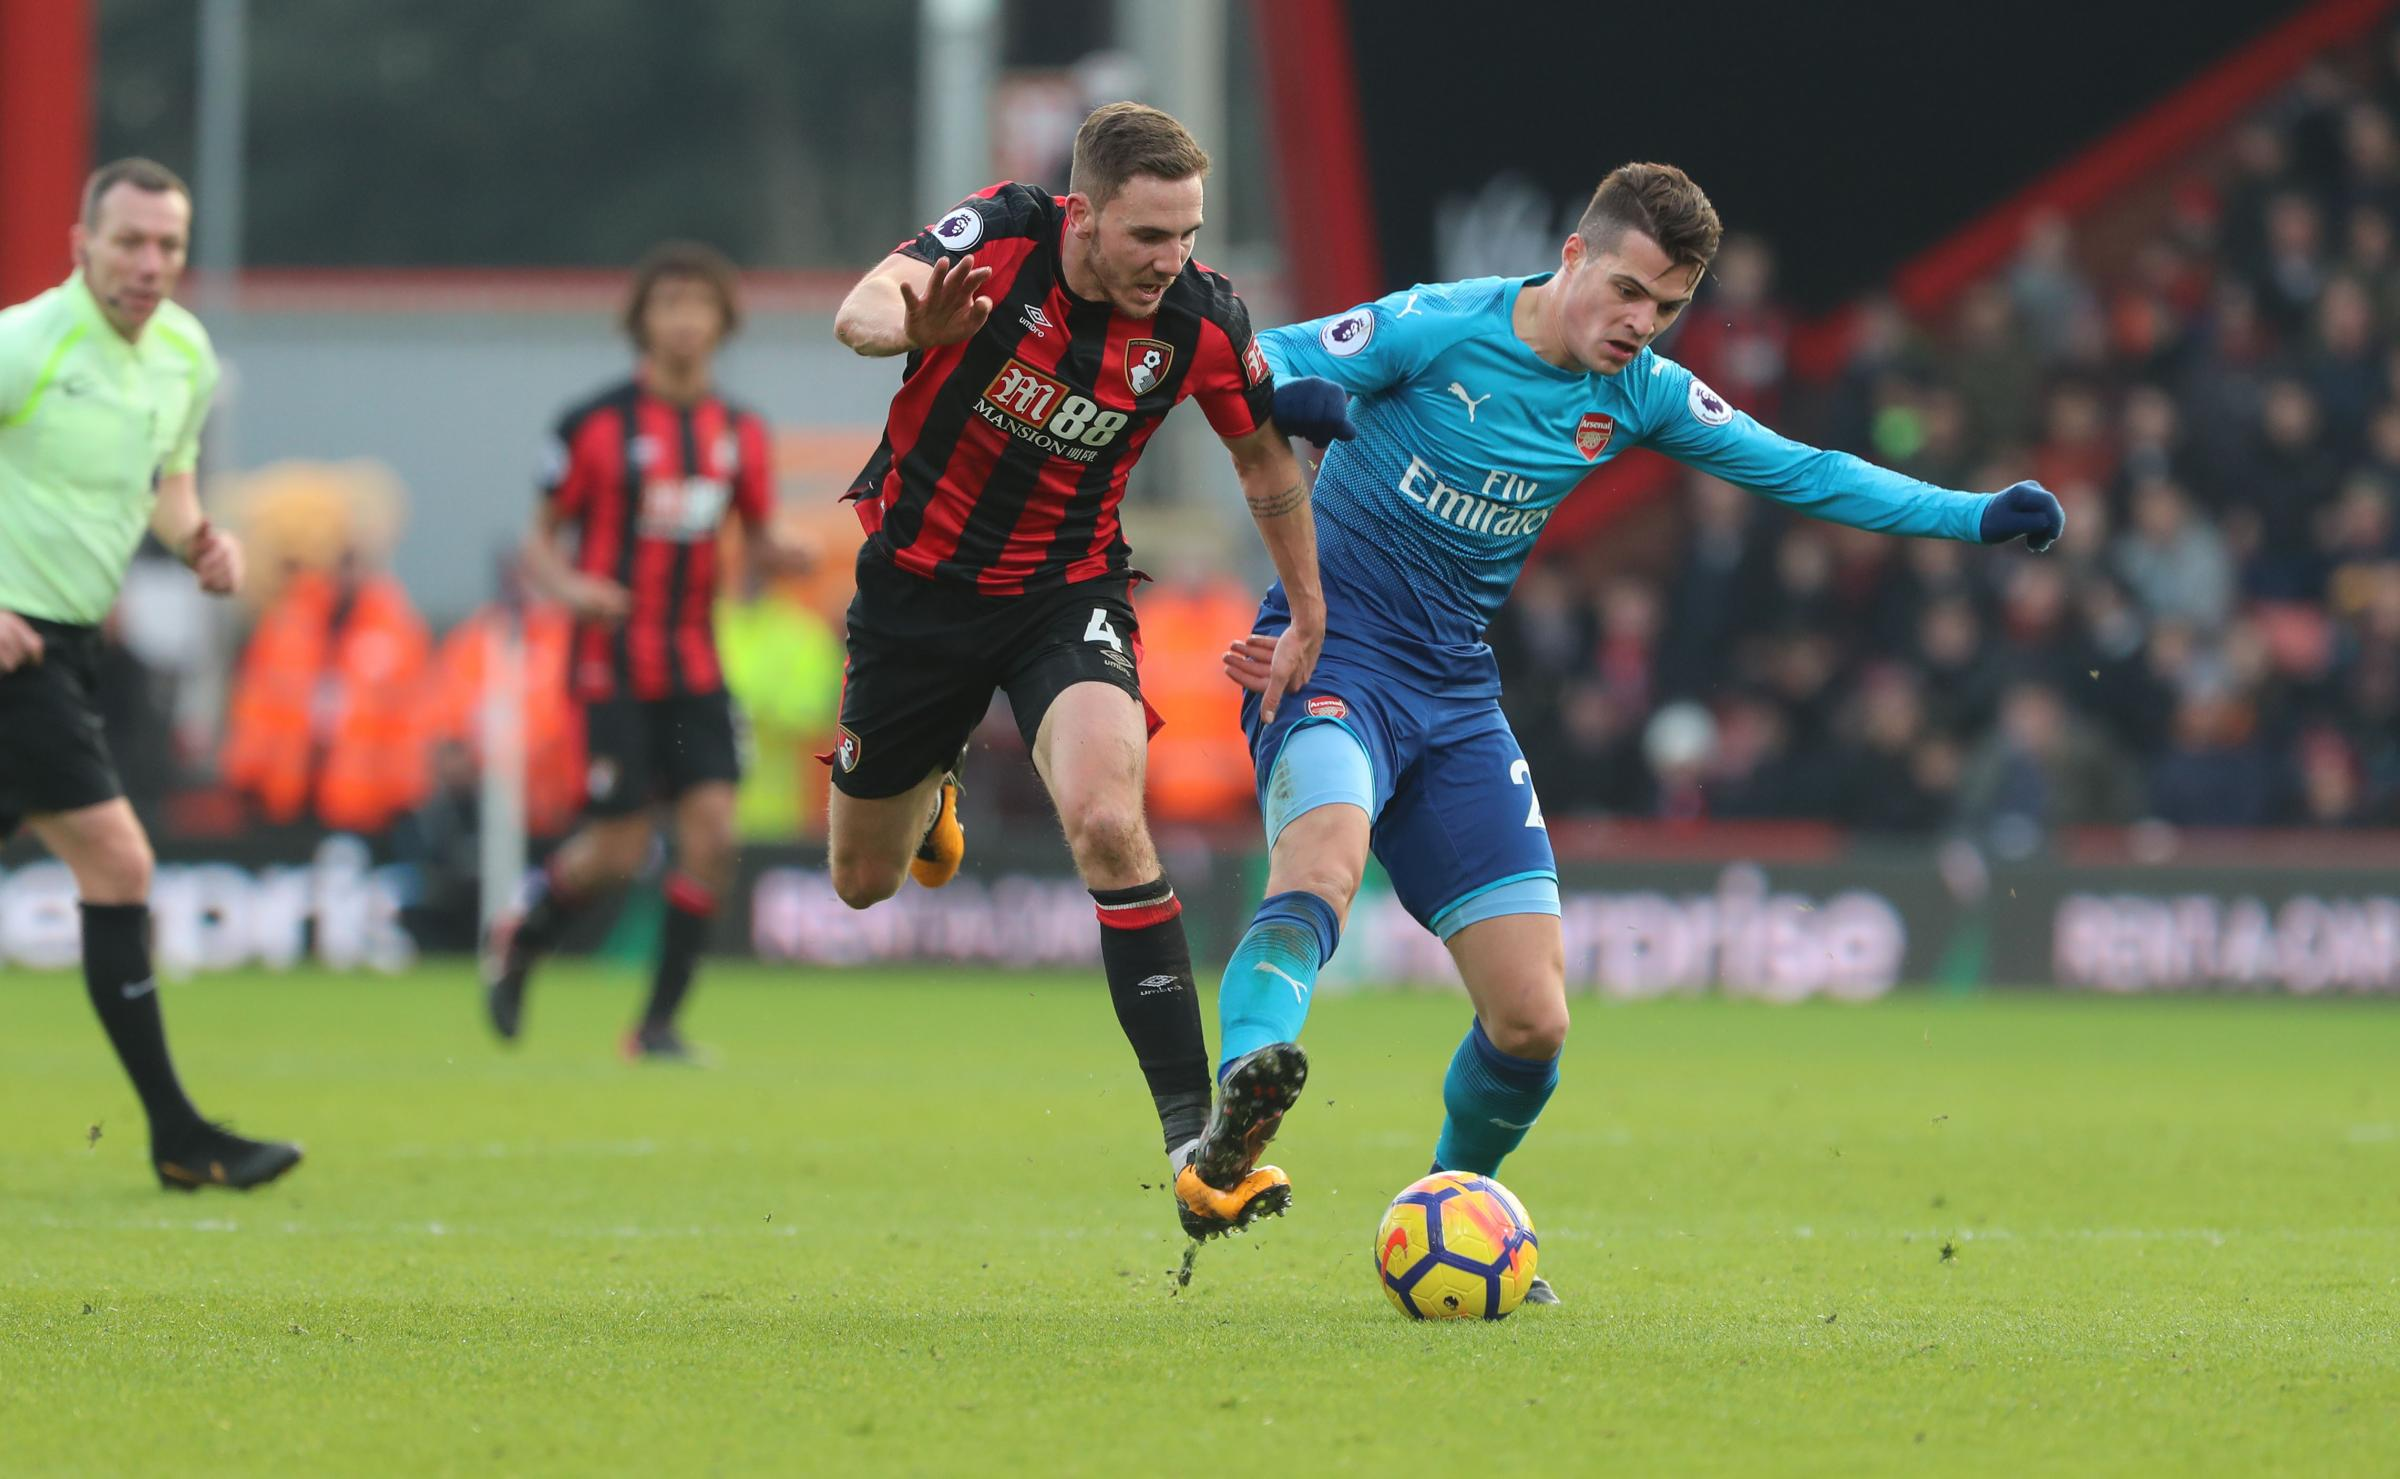 Eddie Howe says scoreline flattered Tottenham after Bournemouth's 4-1 defeat